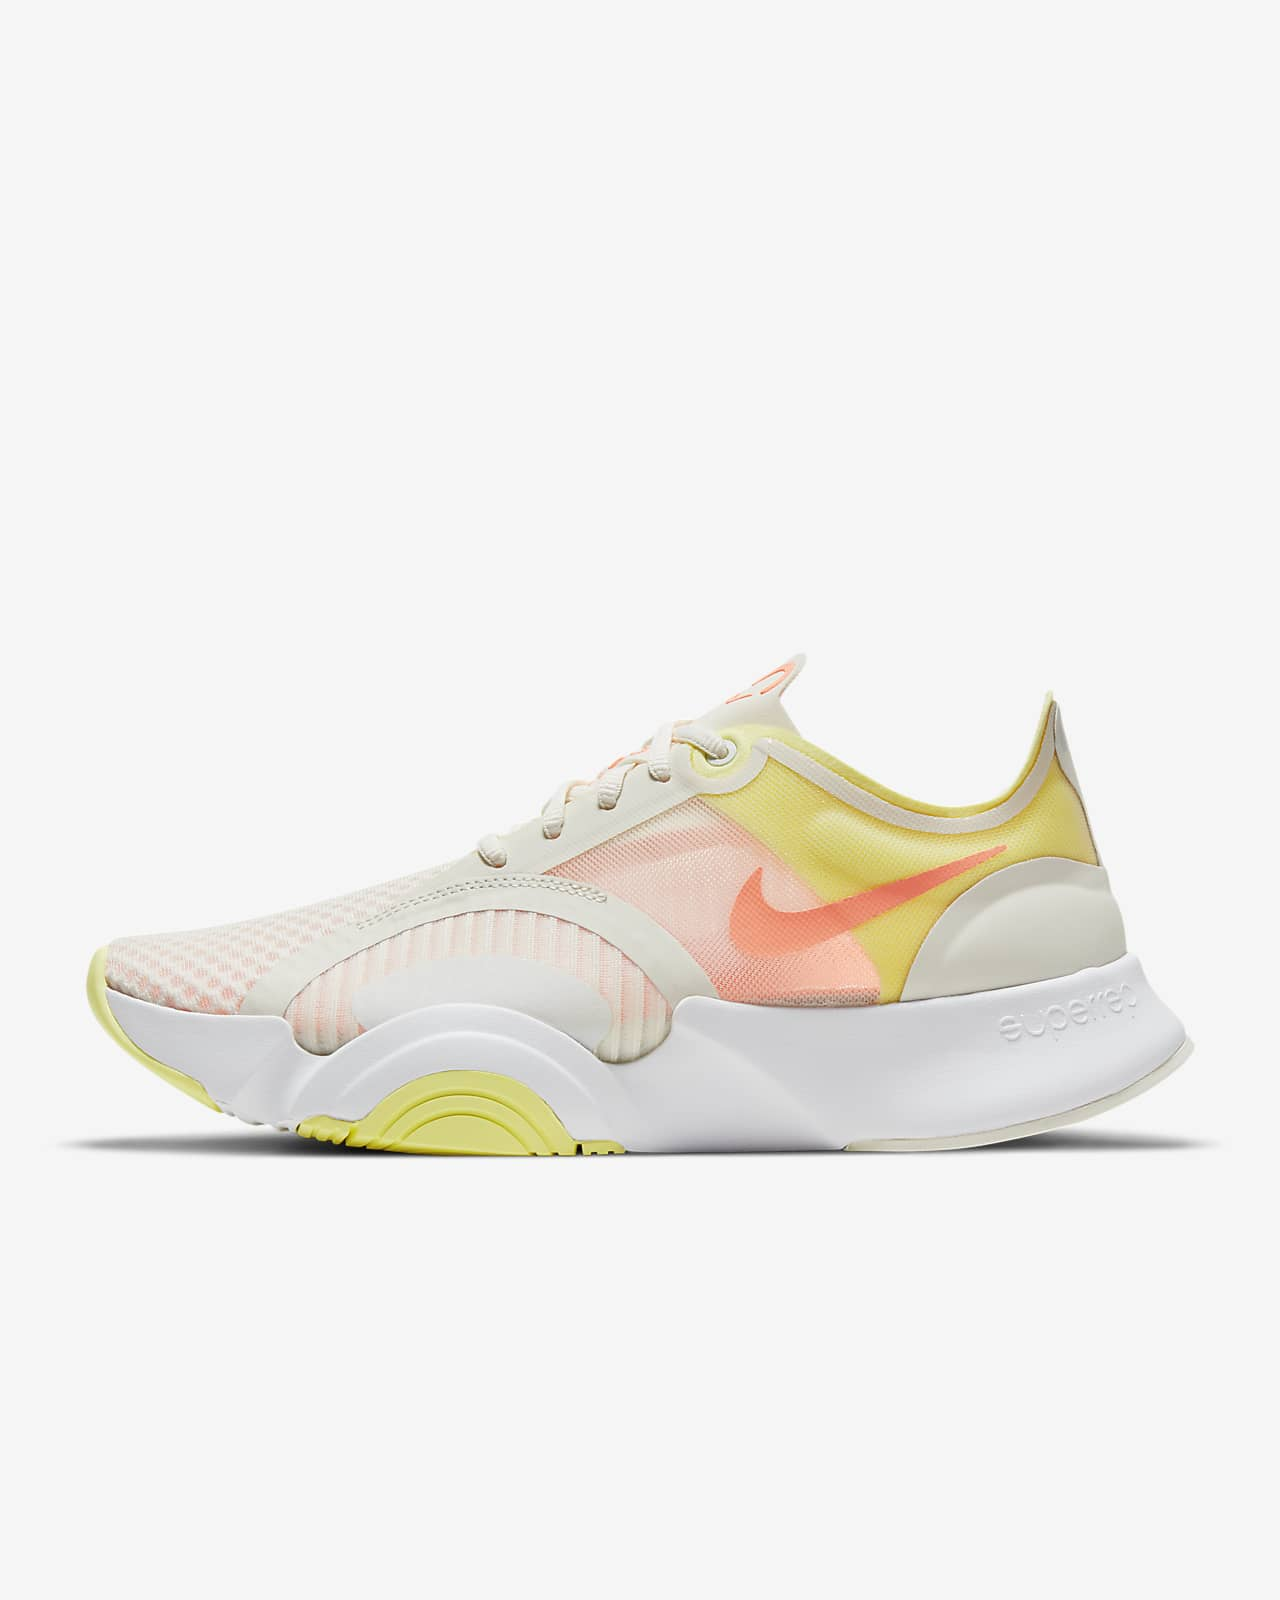 Nike-SuperRep-Go. +80 Most Inspiring Workout Shoes Ideas for Women